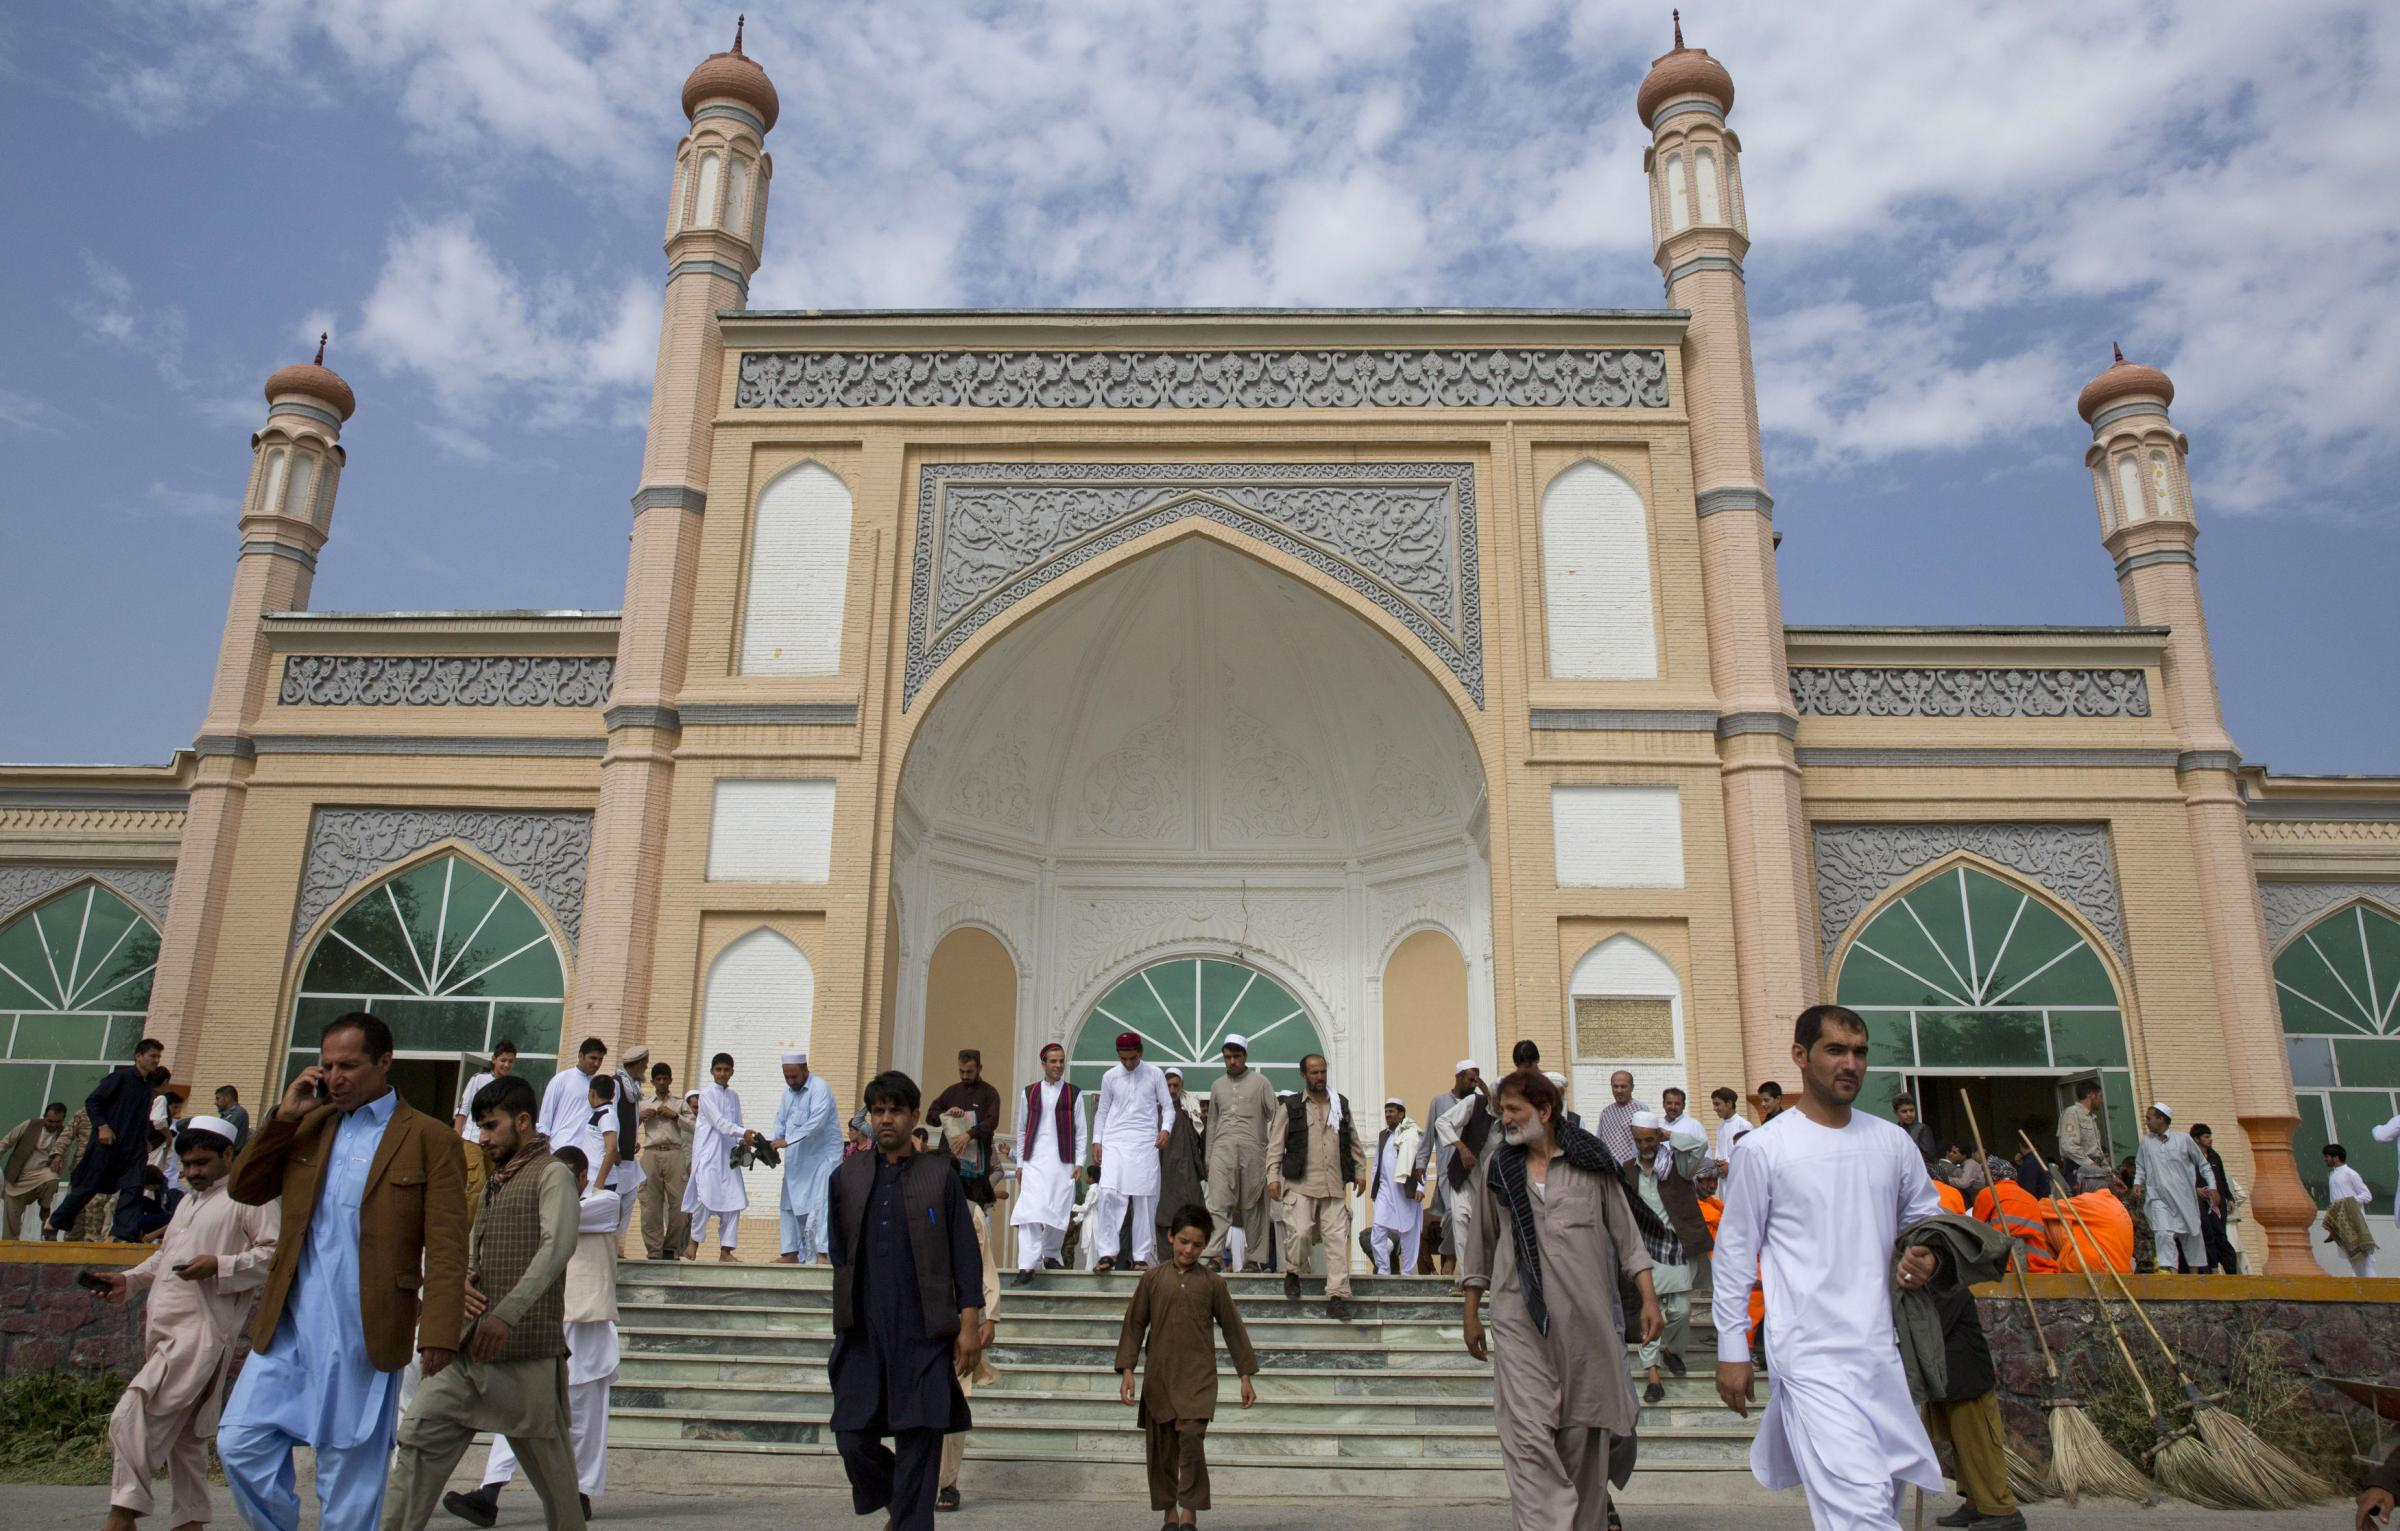 Afghan men leave after Eid Al-Fitr prayers in Eid Gah mosque in Kabul, Afghanistan, Friday, July 17, 2015. Eid al-Fitr prayer marks the end of the holy fasting month of Ramadan.(AP Hossaini).